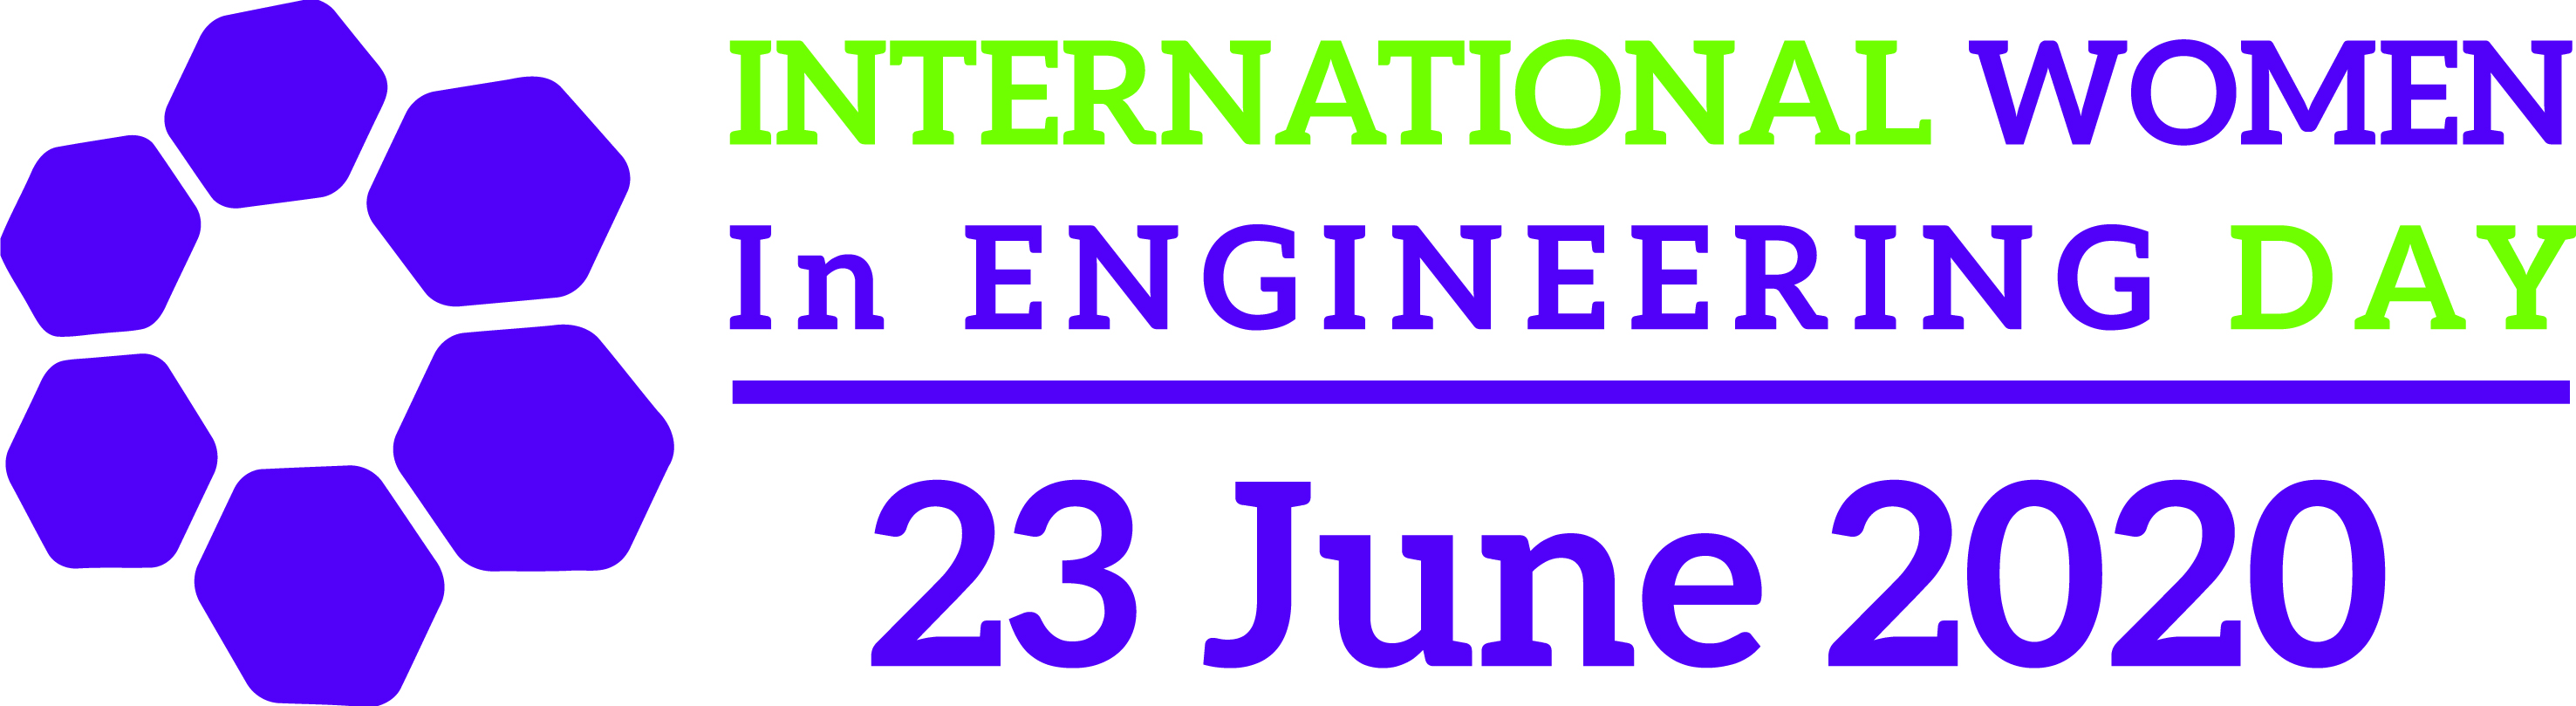 The logo representing International Women in Engineering Day (#INWED20) - A colour logo representing International Women in Engineering Day (#INWED20) which took place on 23 June 2020